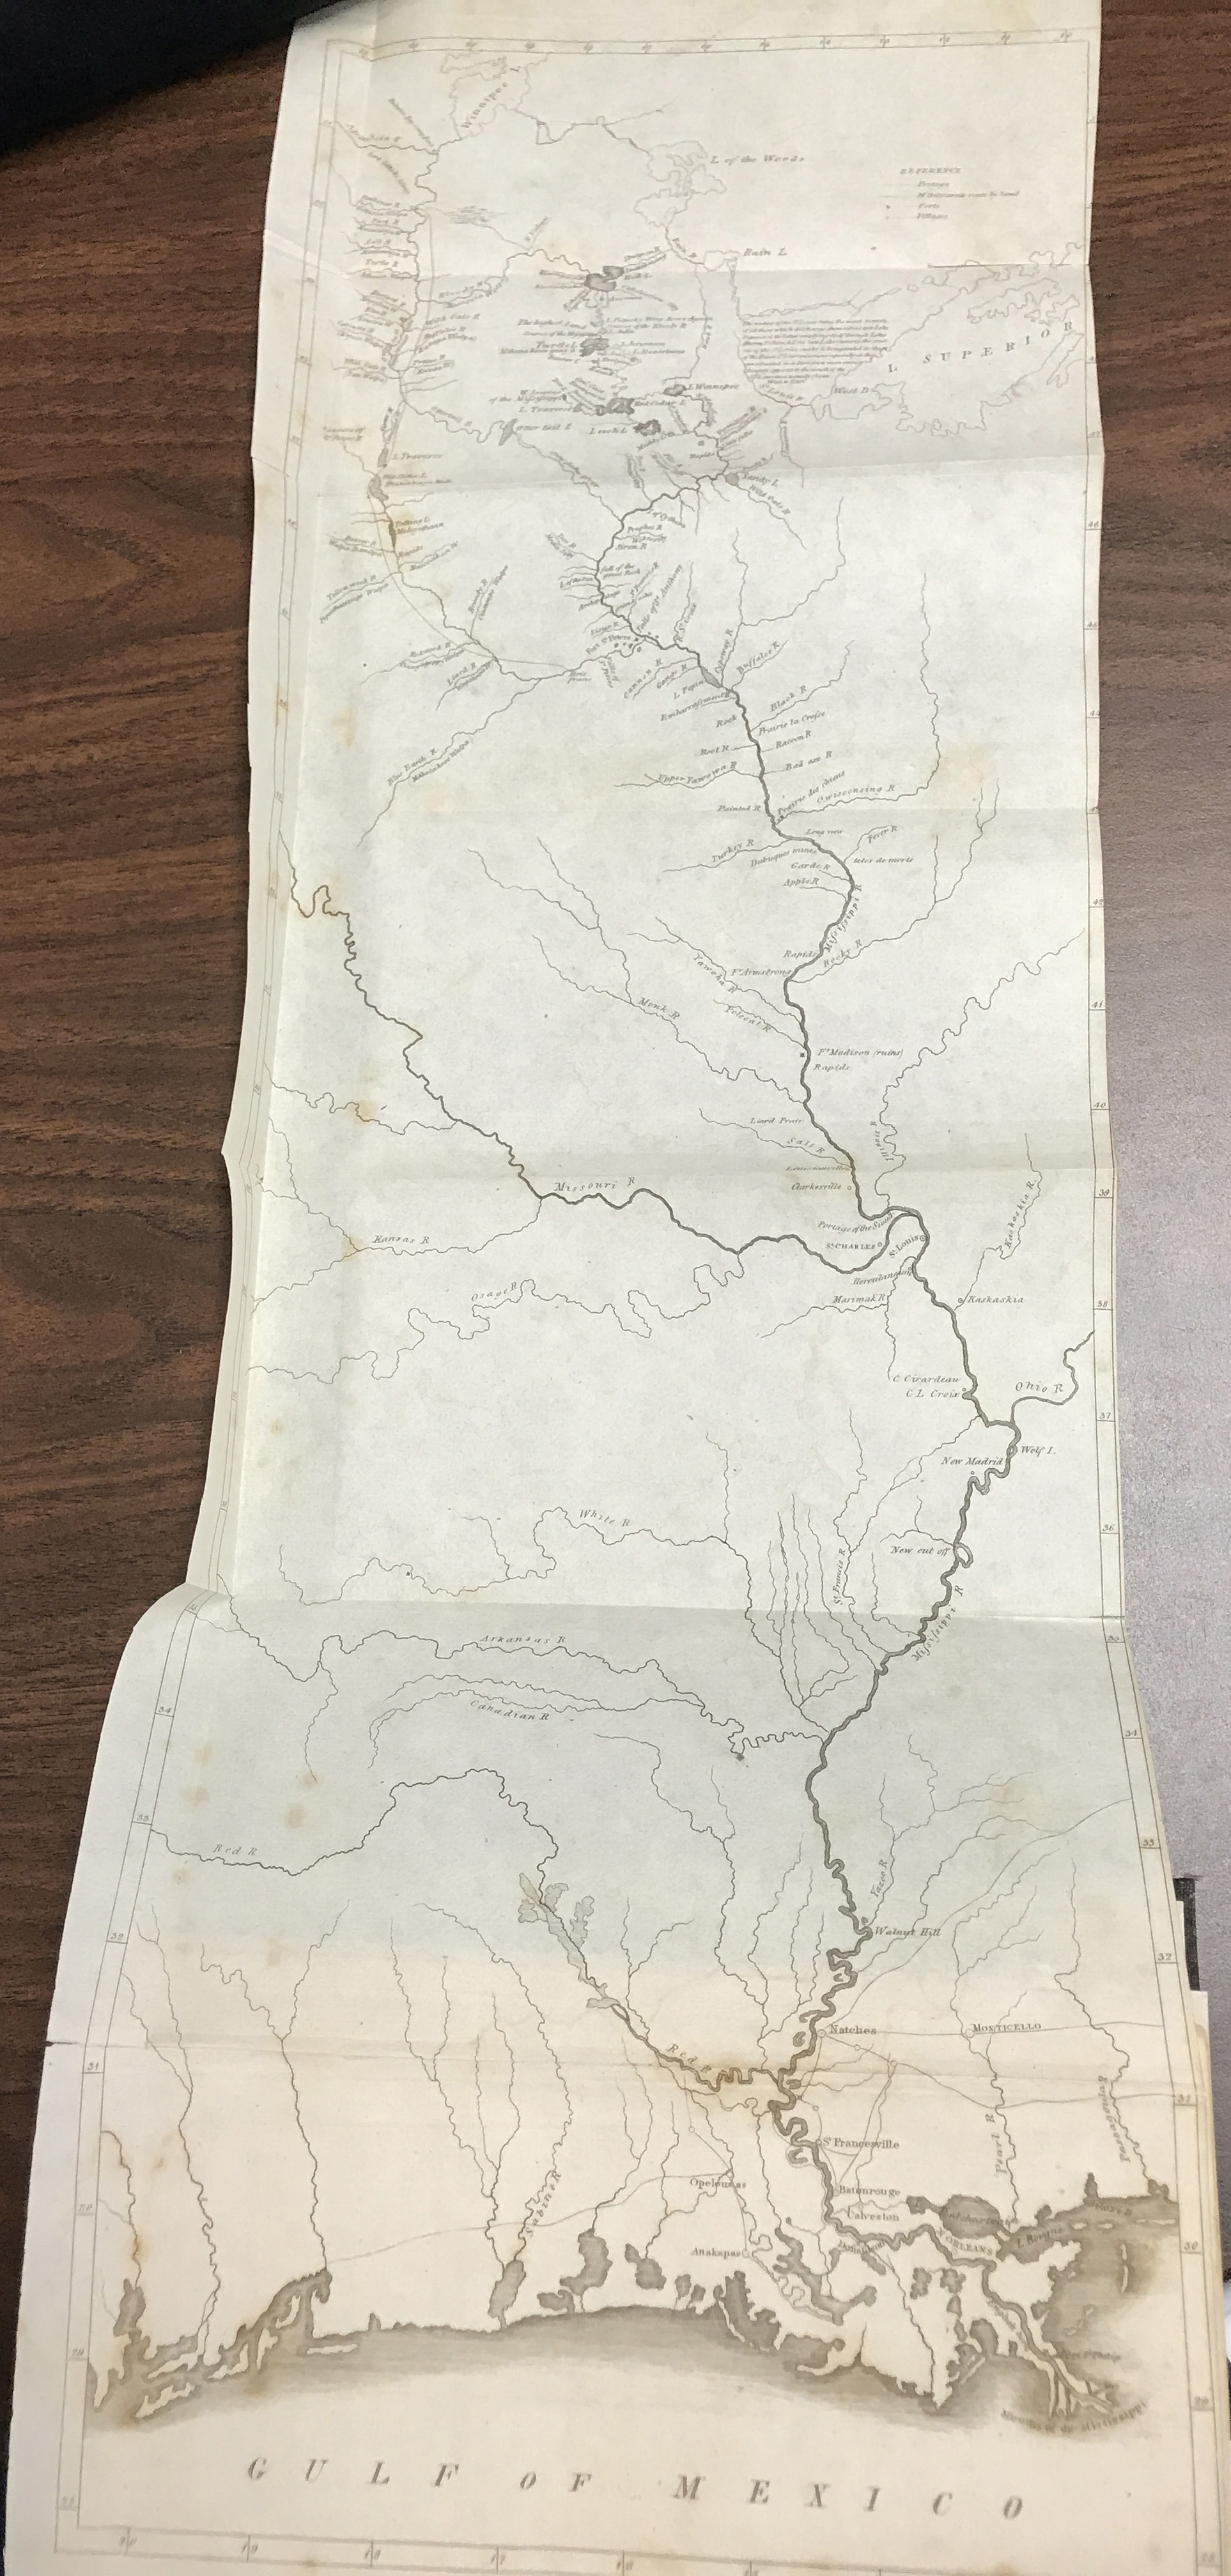 Map of the Course of the Mississippi River. Giacomo Costantino Beltrami, A pilgrimage in Europe and America: leading to the discovery of the sources of the Mississippi and the Blood River.... London, 1828. (Bell Library 1828 Be)